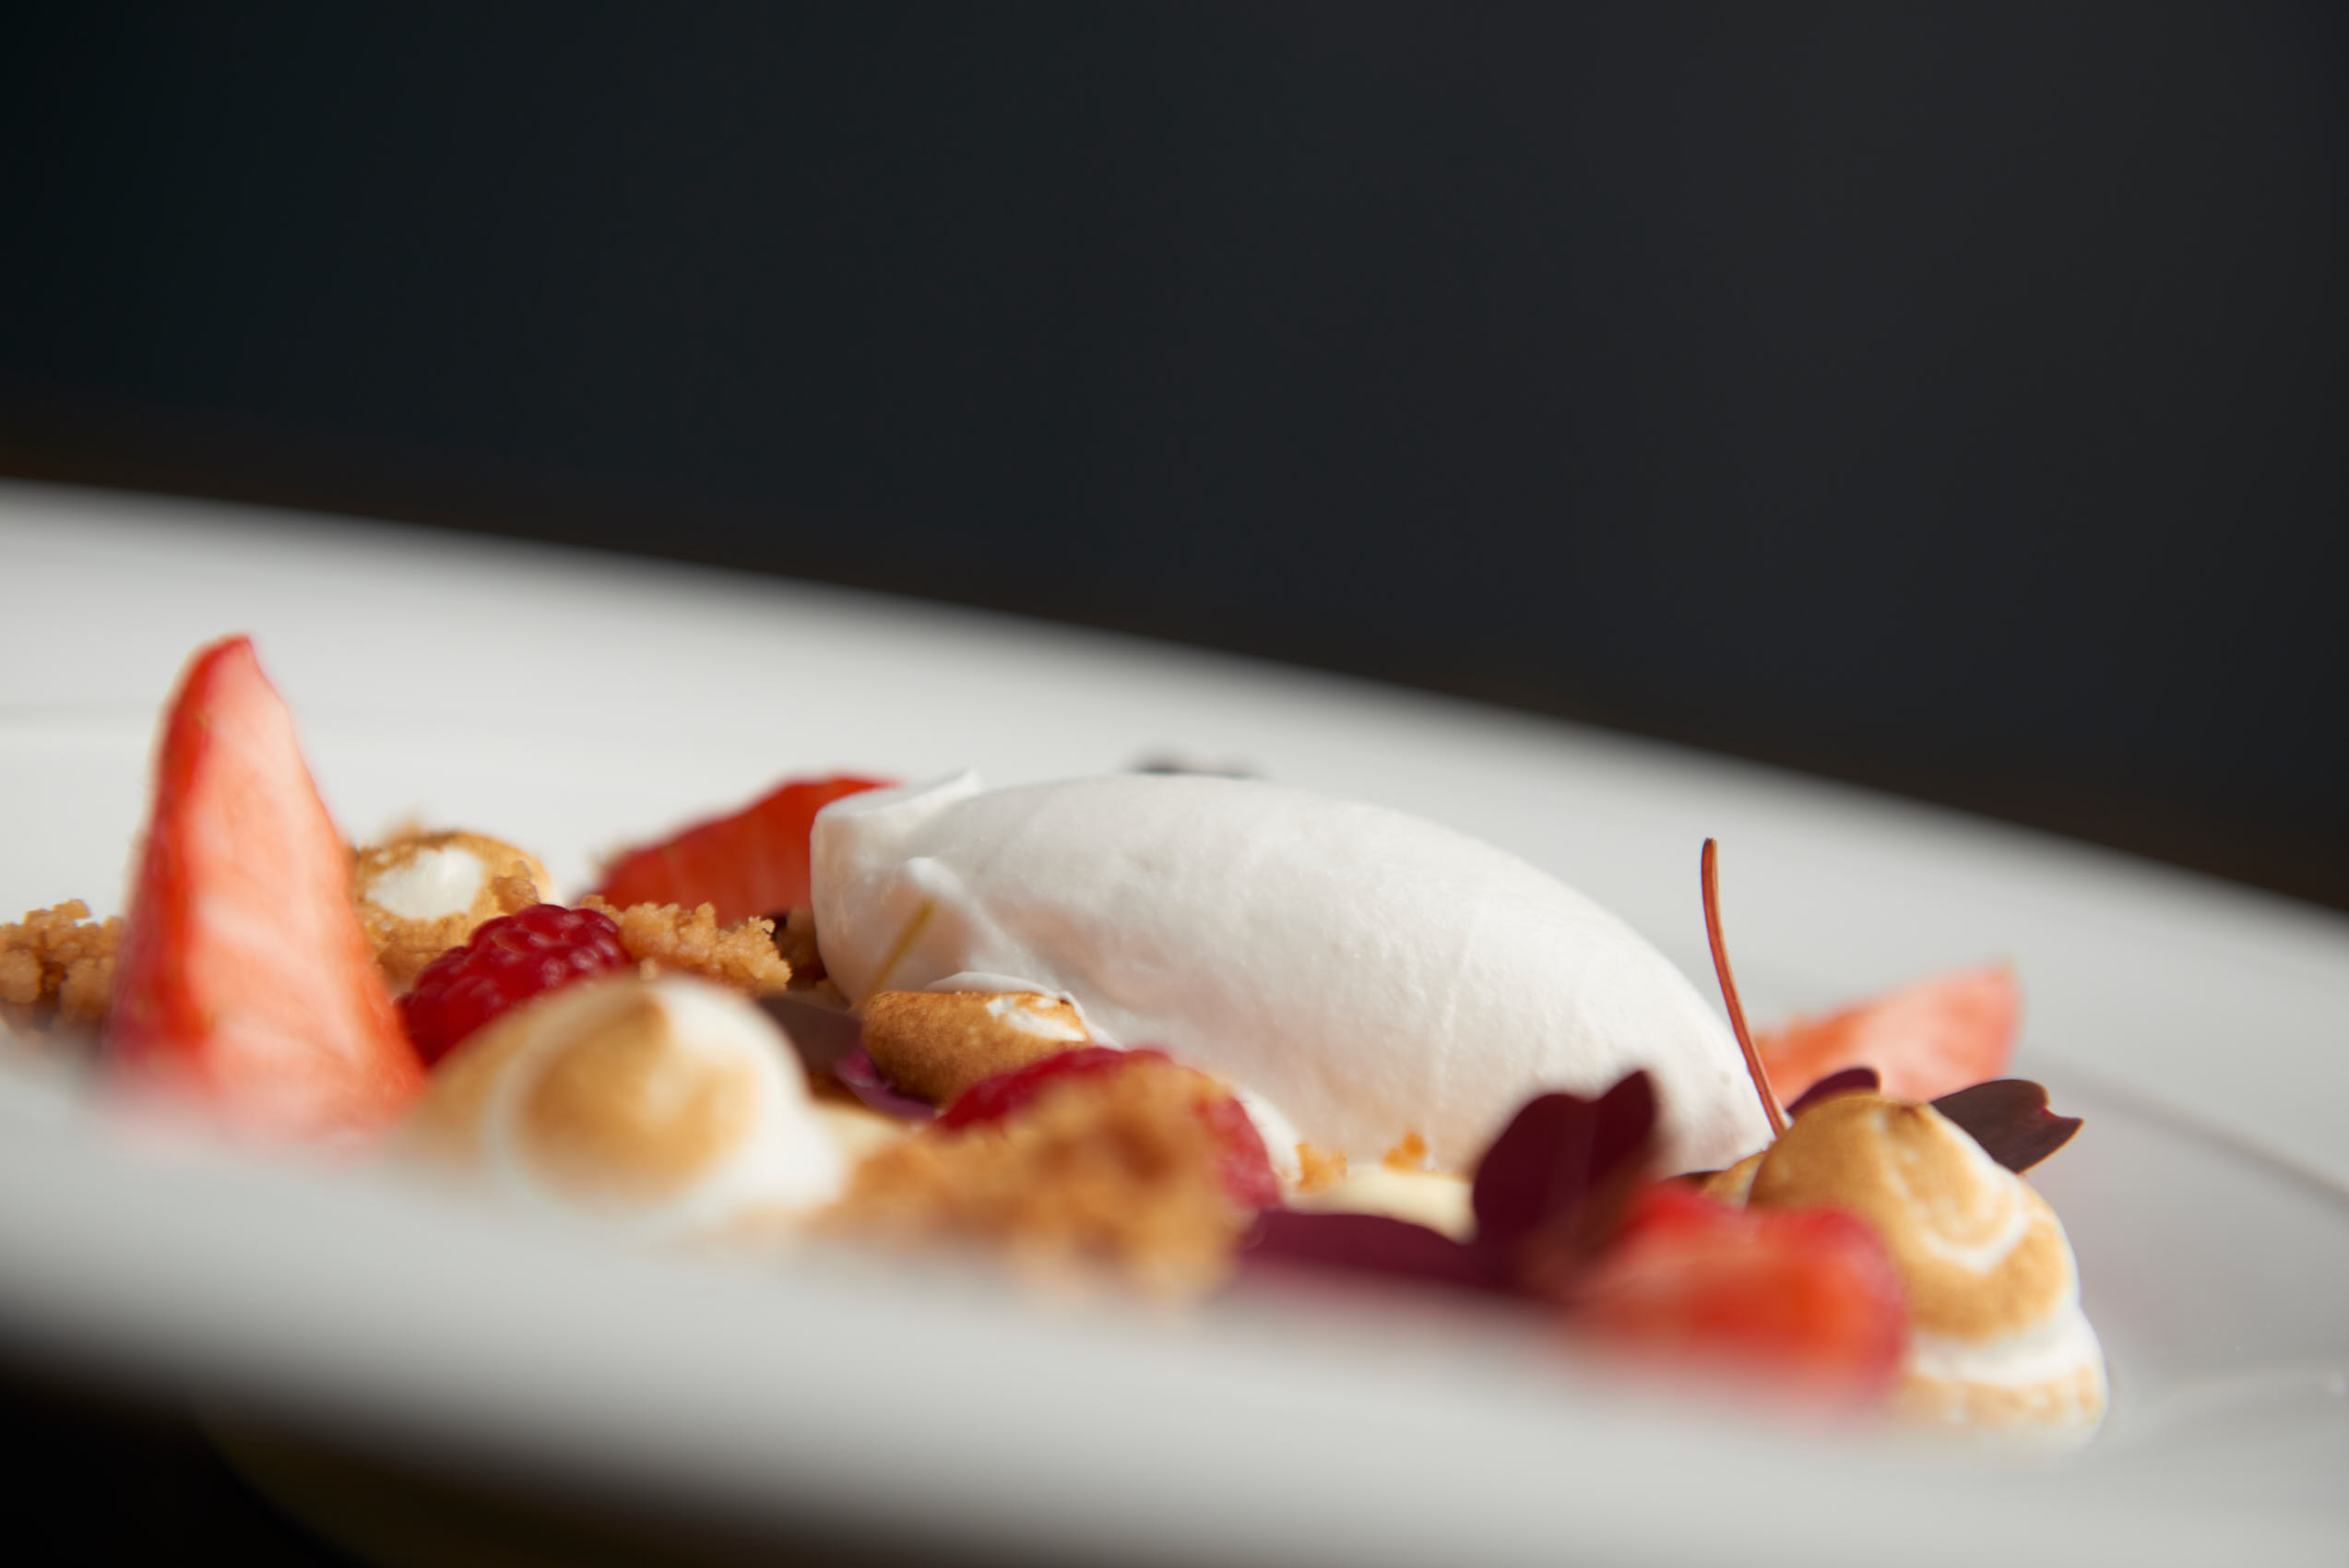 Vanilla ice cream with meringue, strawberries and crunch photo by Marcel Tiedje